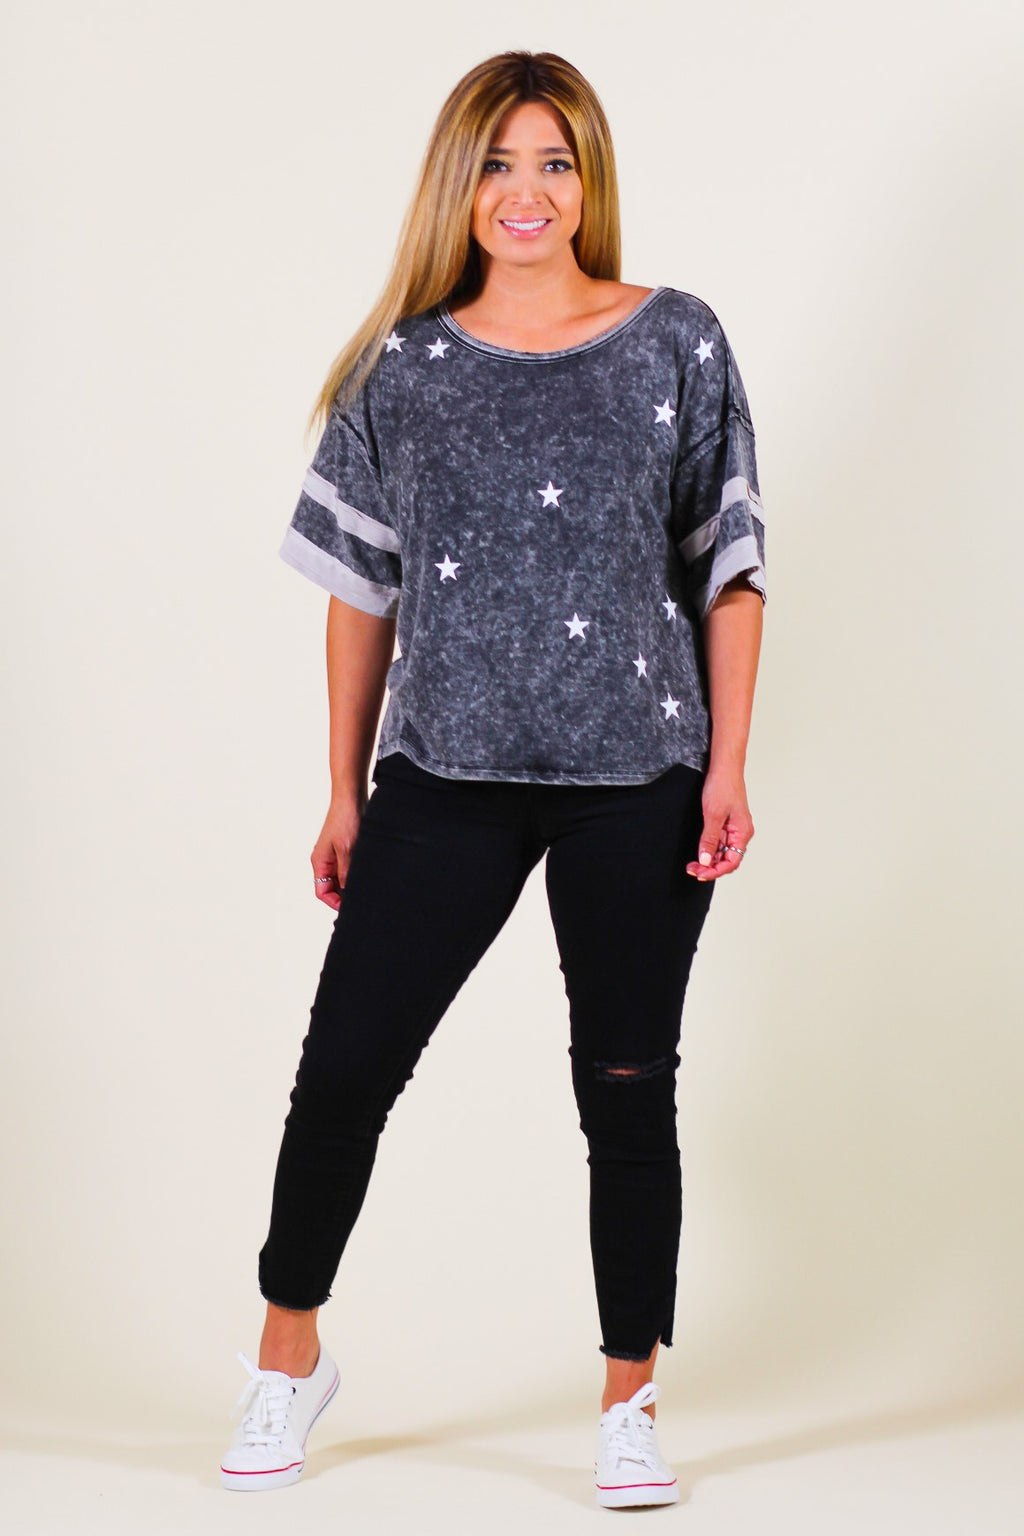 Star Print Mineral Washed Tee